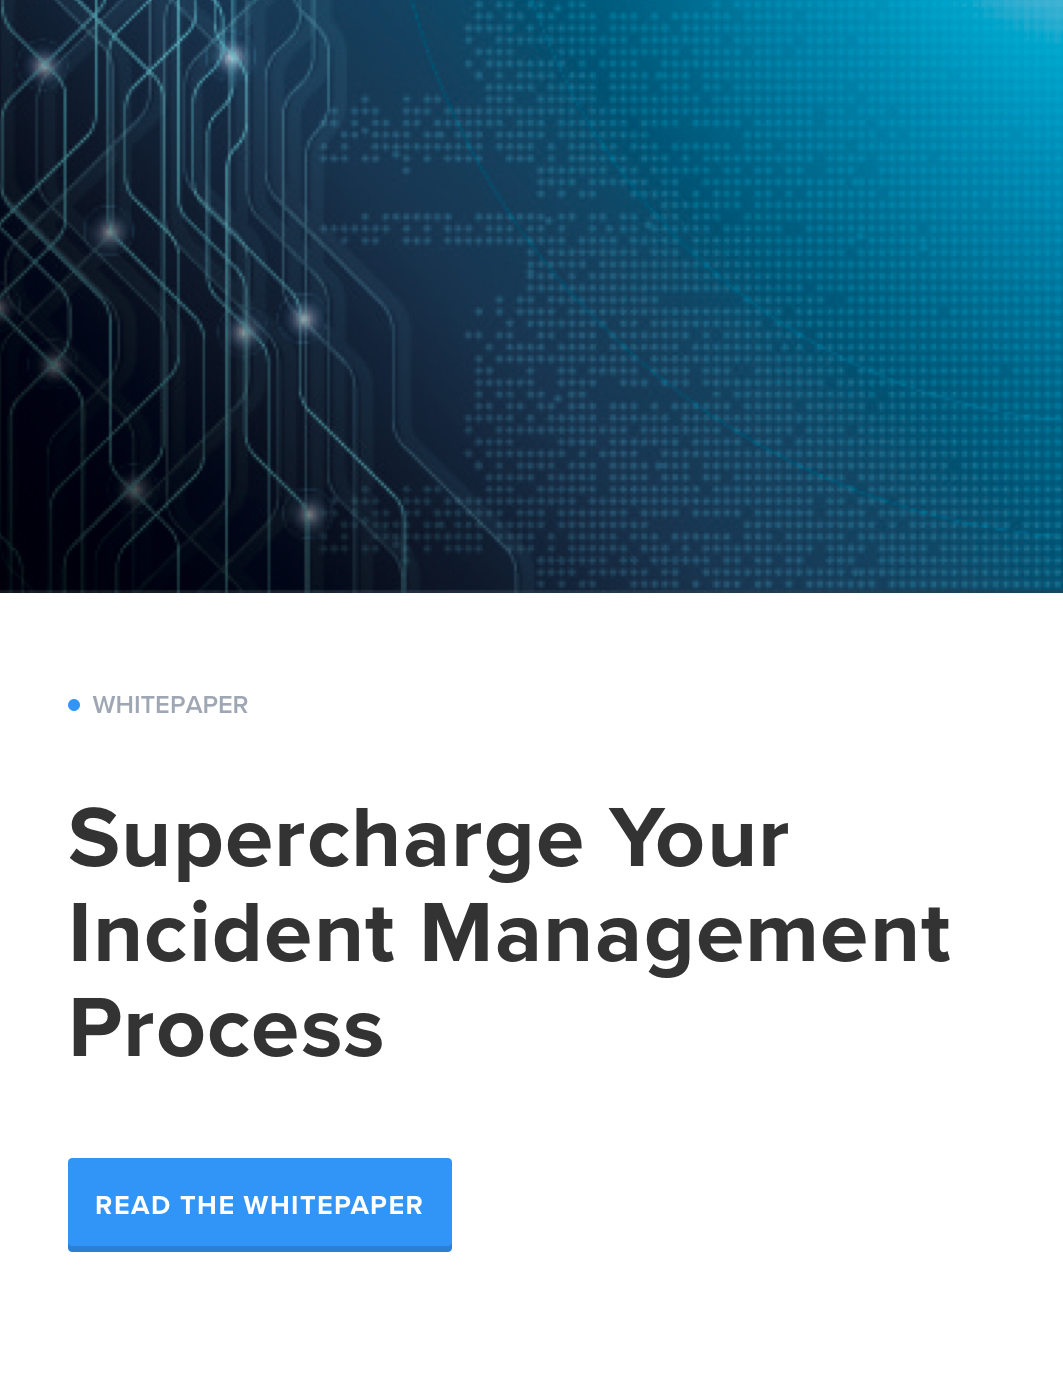 Supercharge Your Incident Management Process